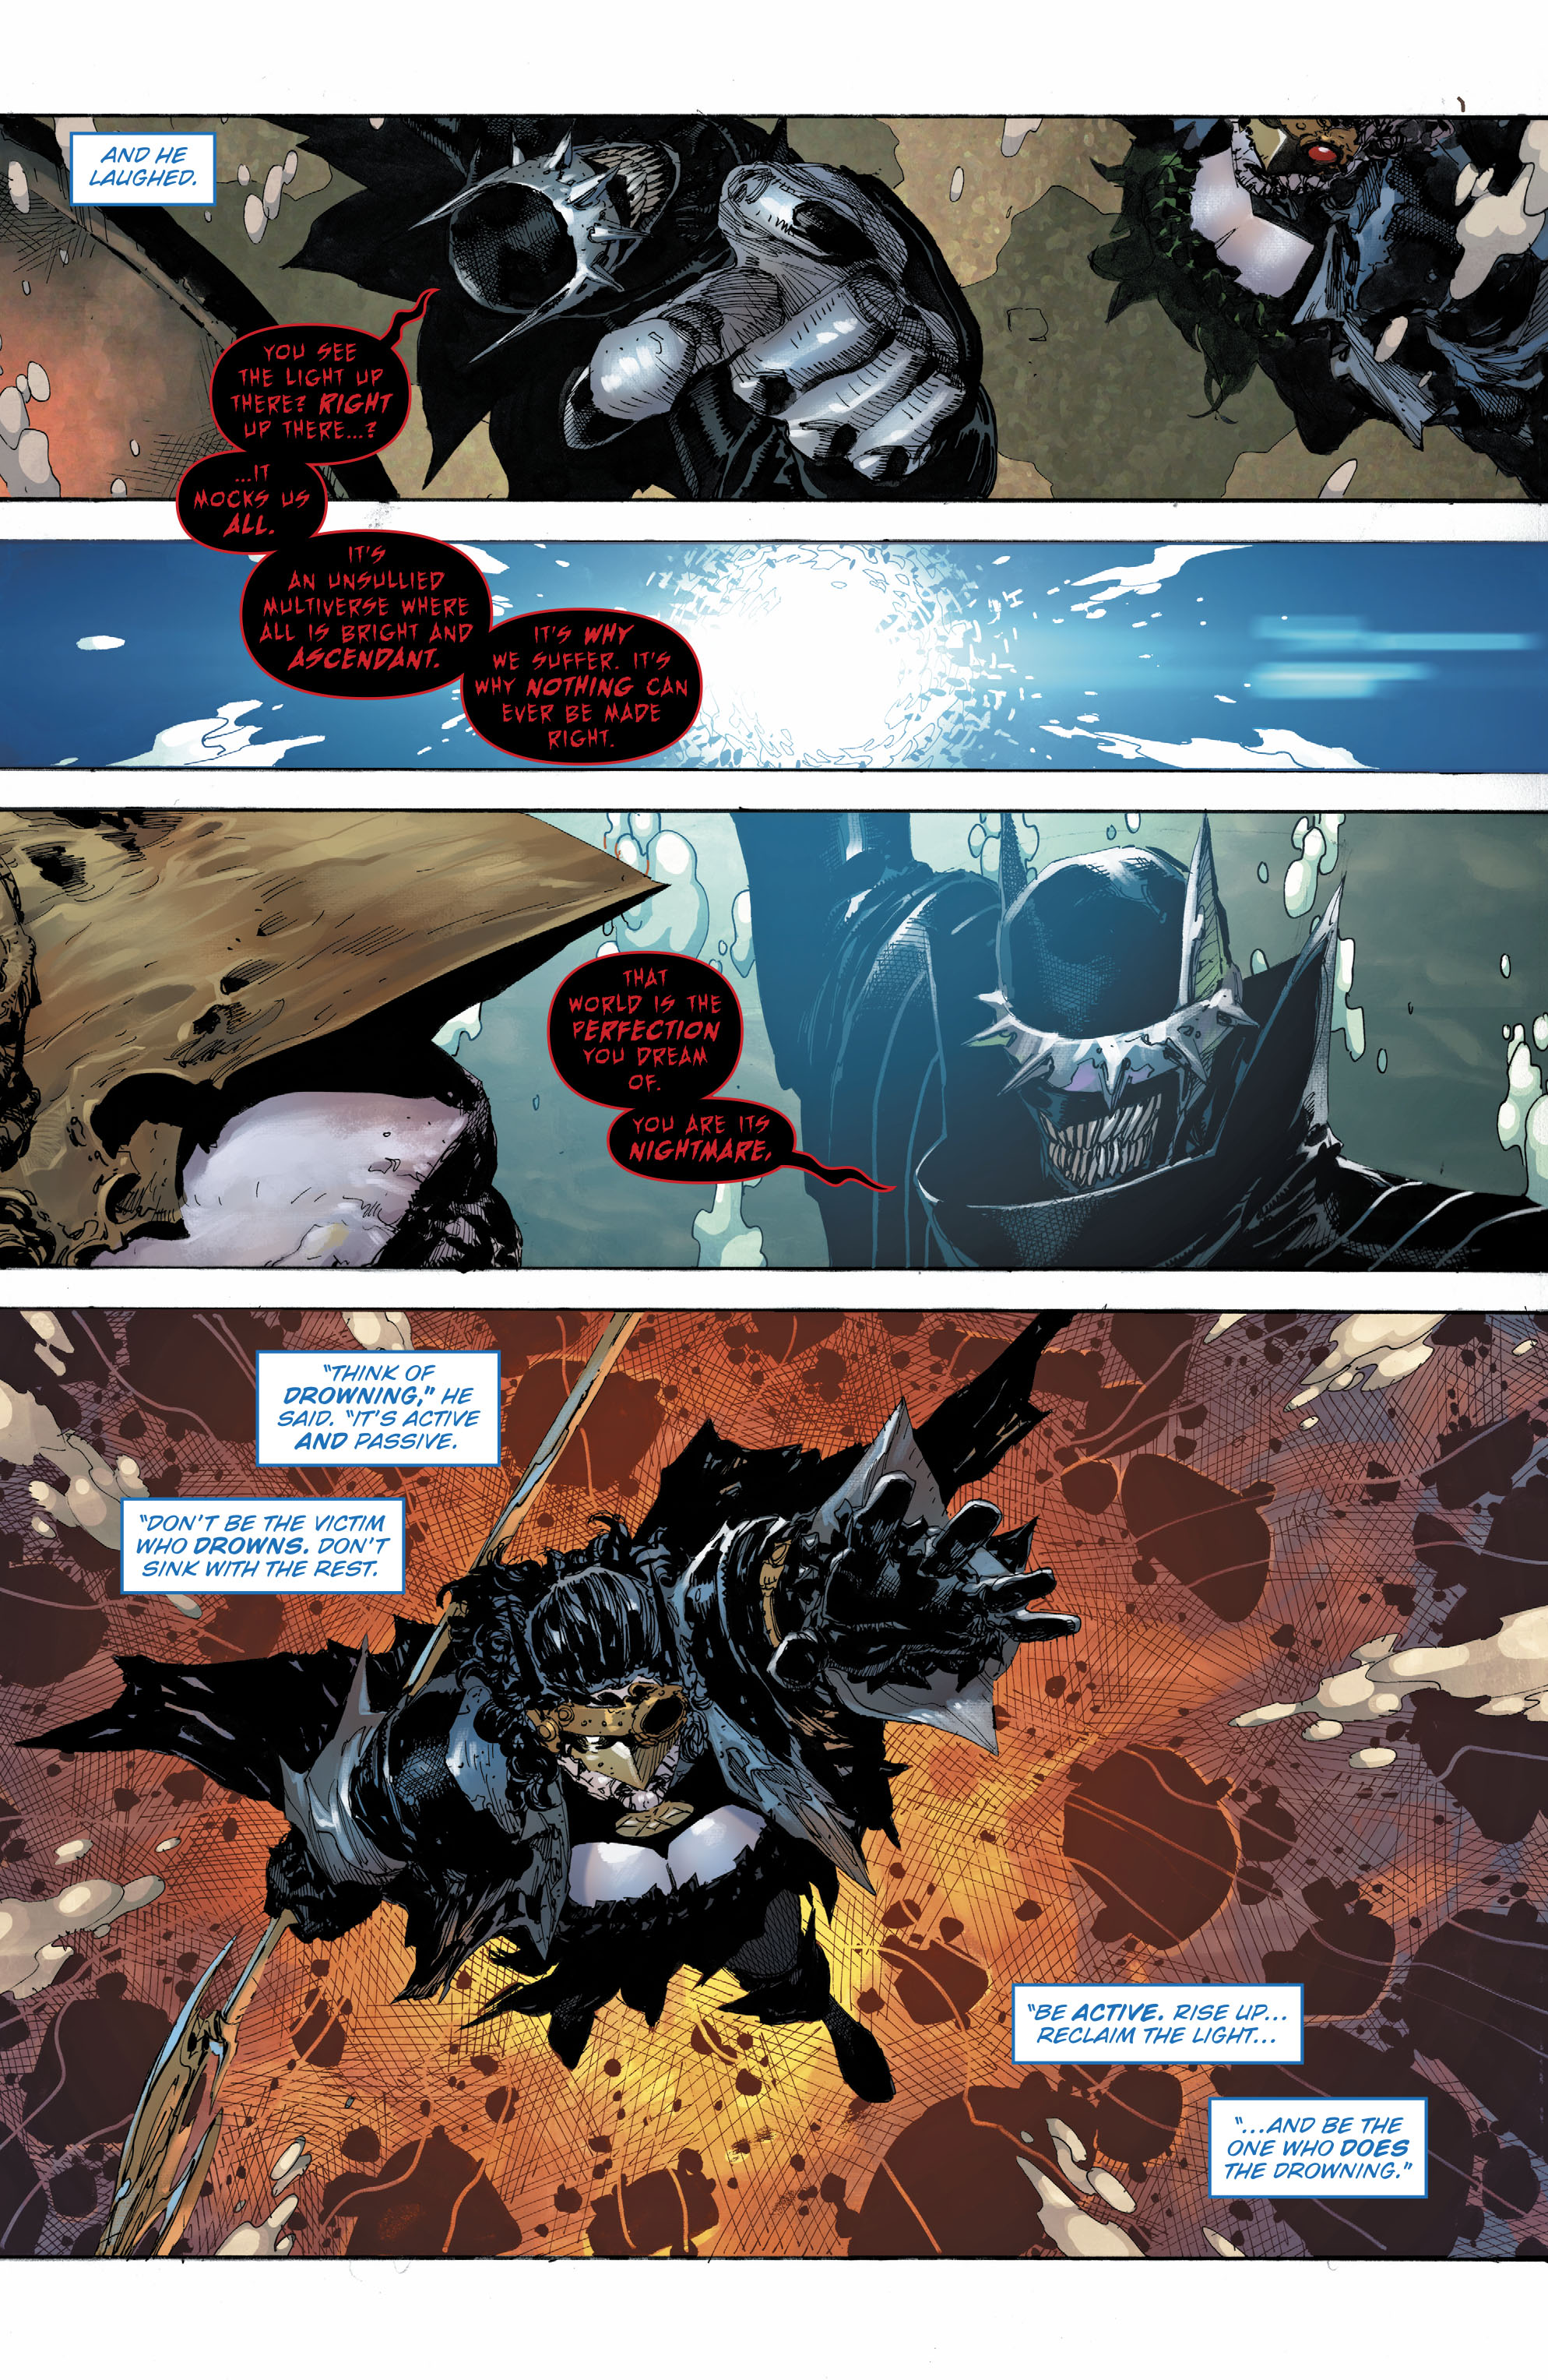 The Batman Who Laughs Recruits The Drowned